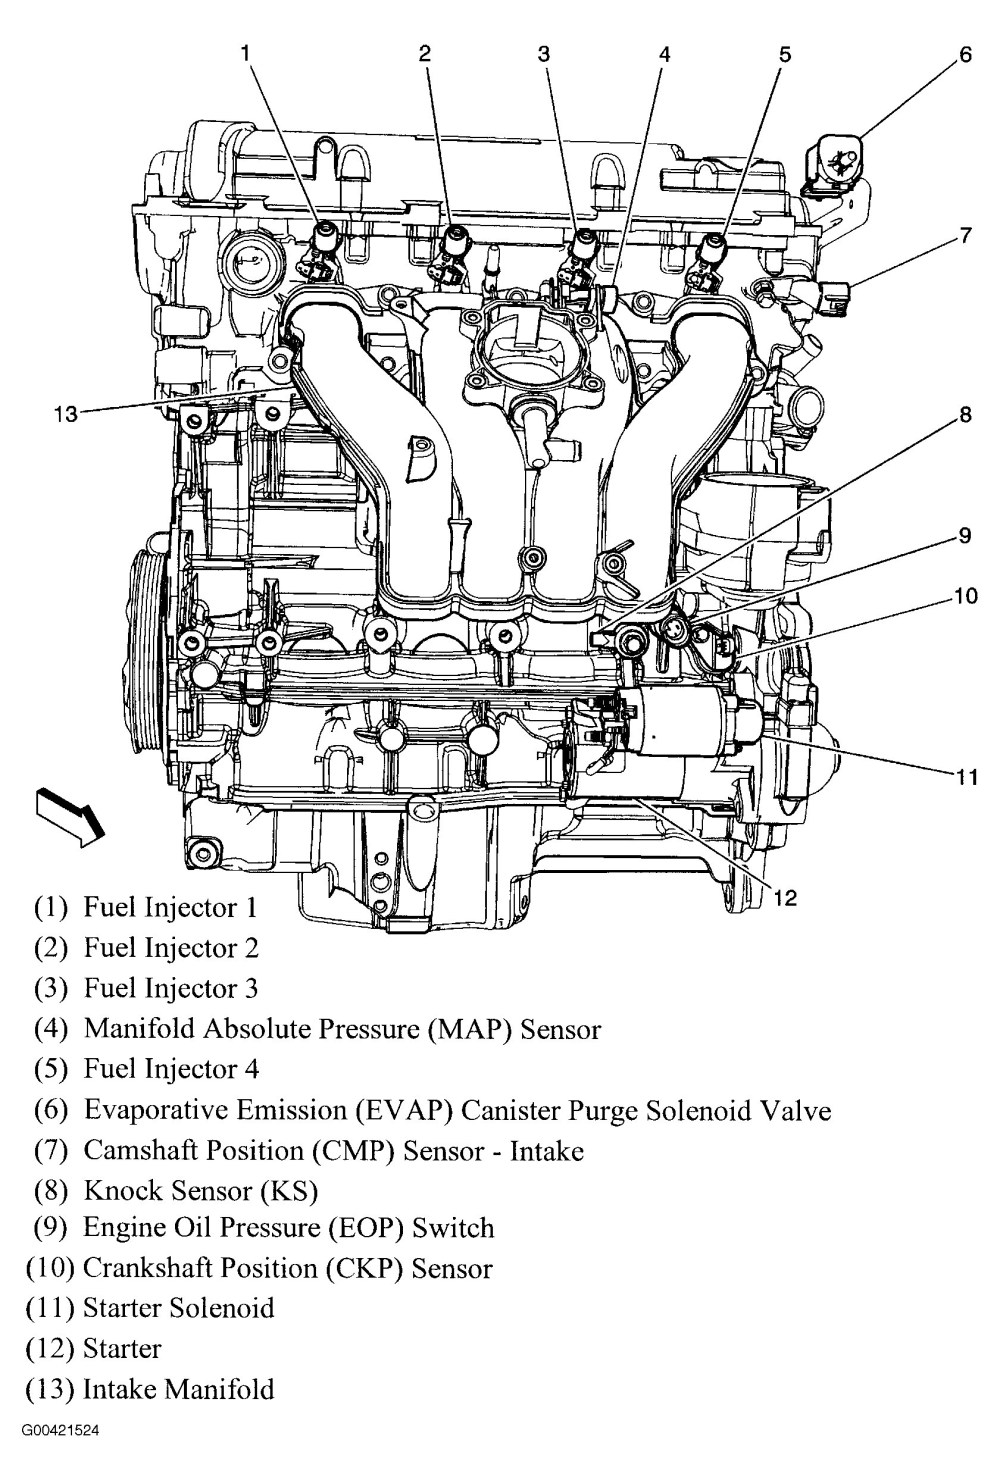 medium resolution of 2003 impala 3 8 engine diagram wiring diagram 2003 impala 3 4 engine diagram